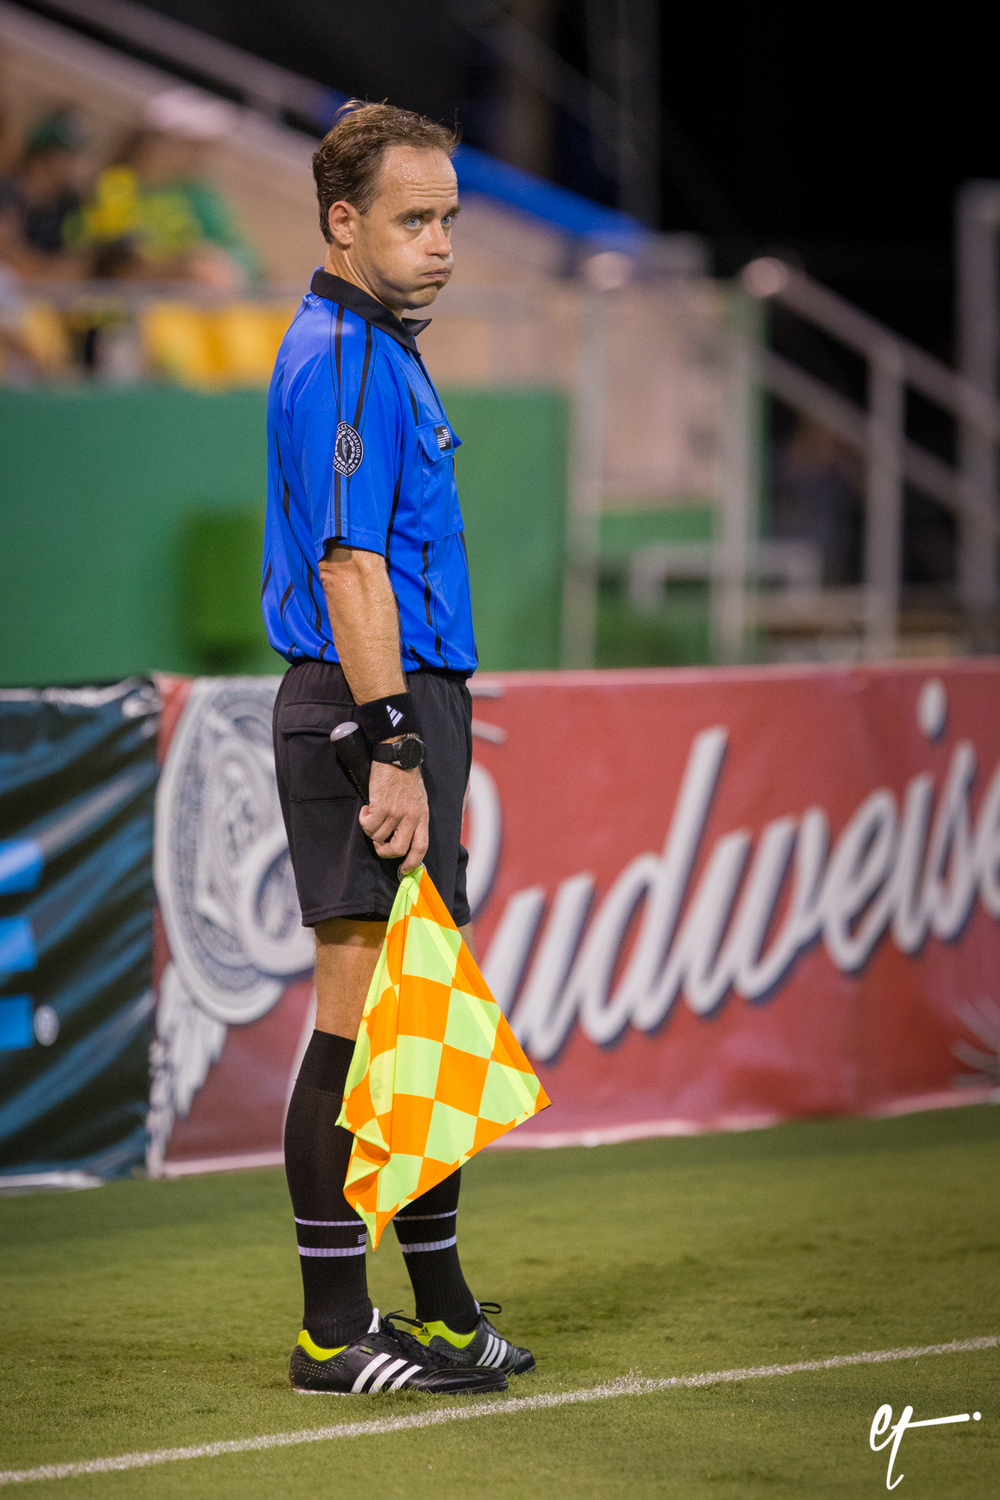 Linesman that made several tough (bad) calls trying to filter out the boos from the crowd. © Eric Tillotson